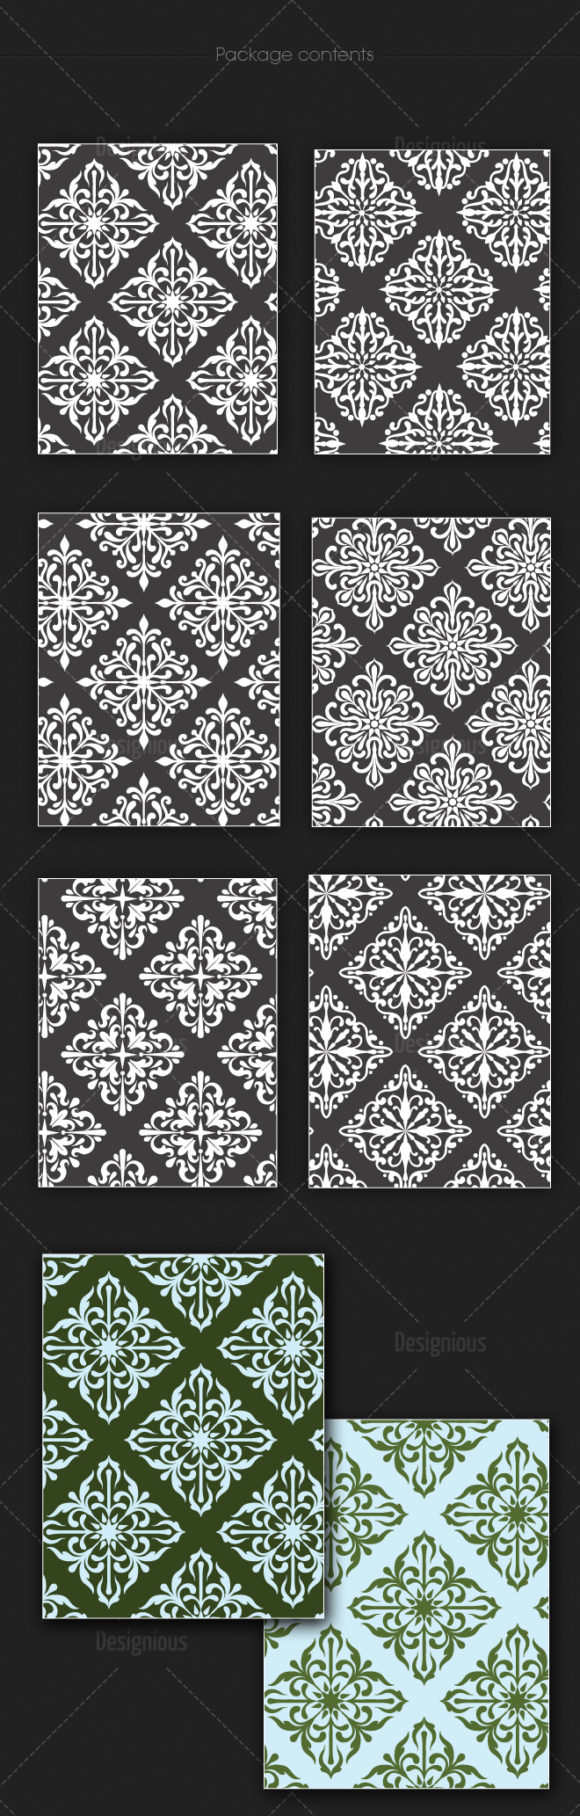 Seamless Patterns Vector Pack 141 6